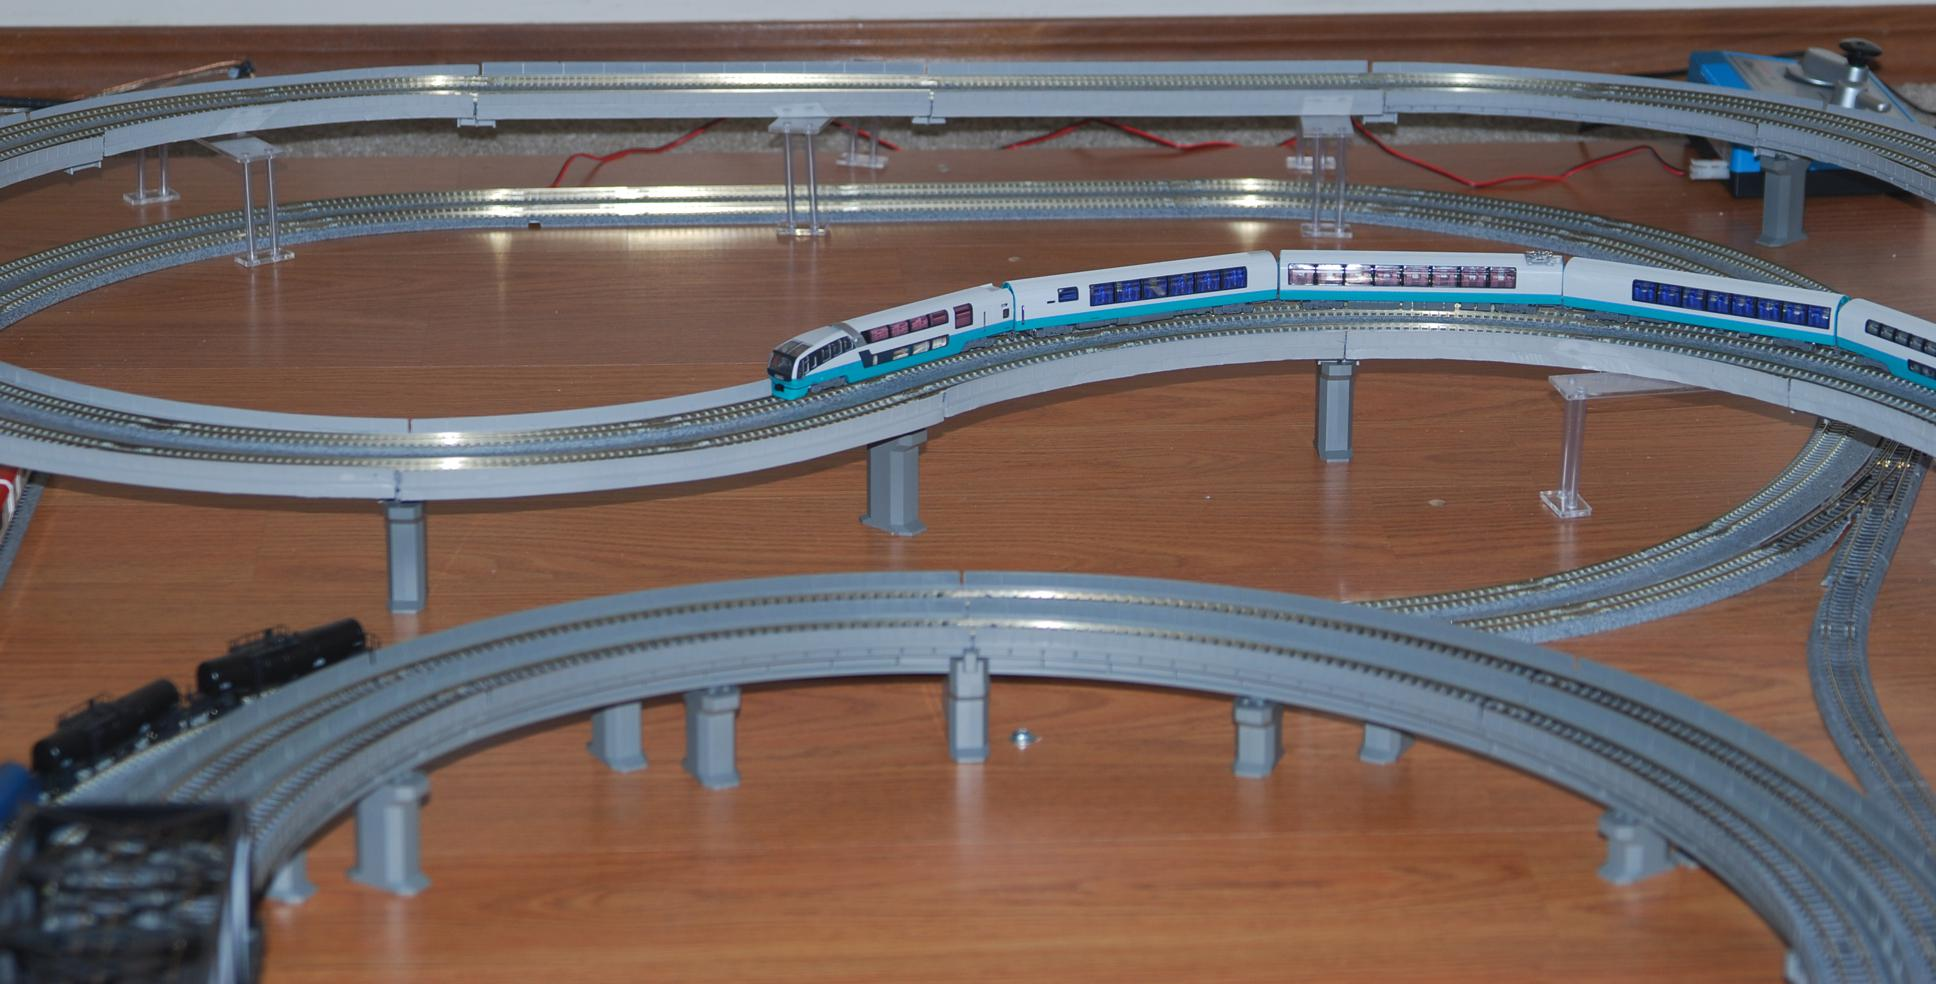 The-Real-KATO-Layout-Pic-3 | SCARM – The Railway Modeller ...